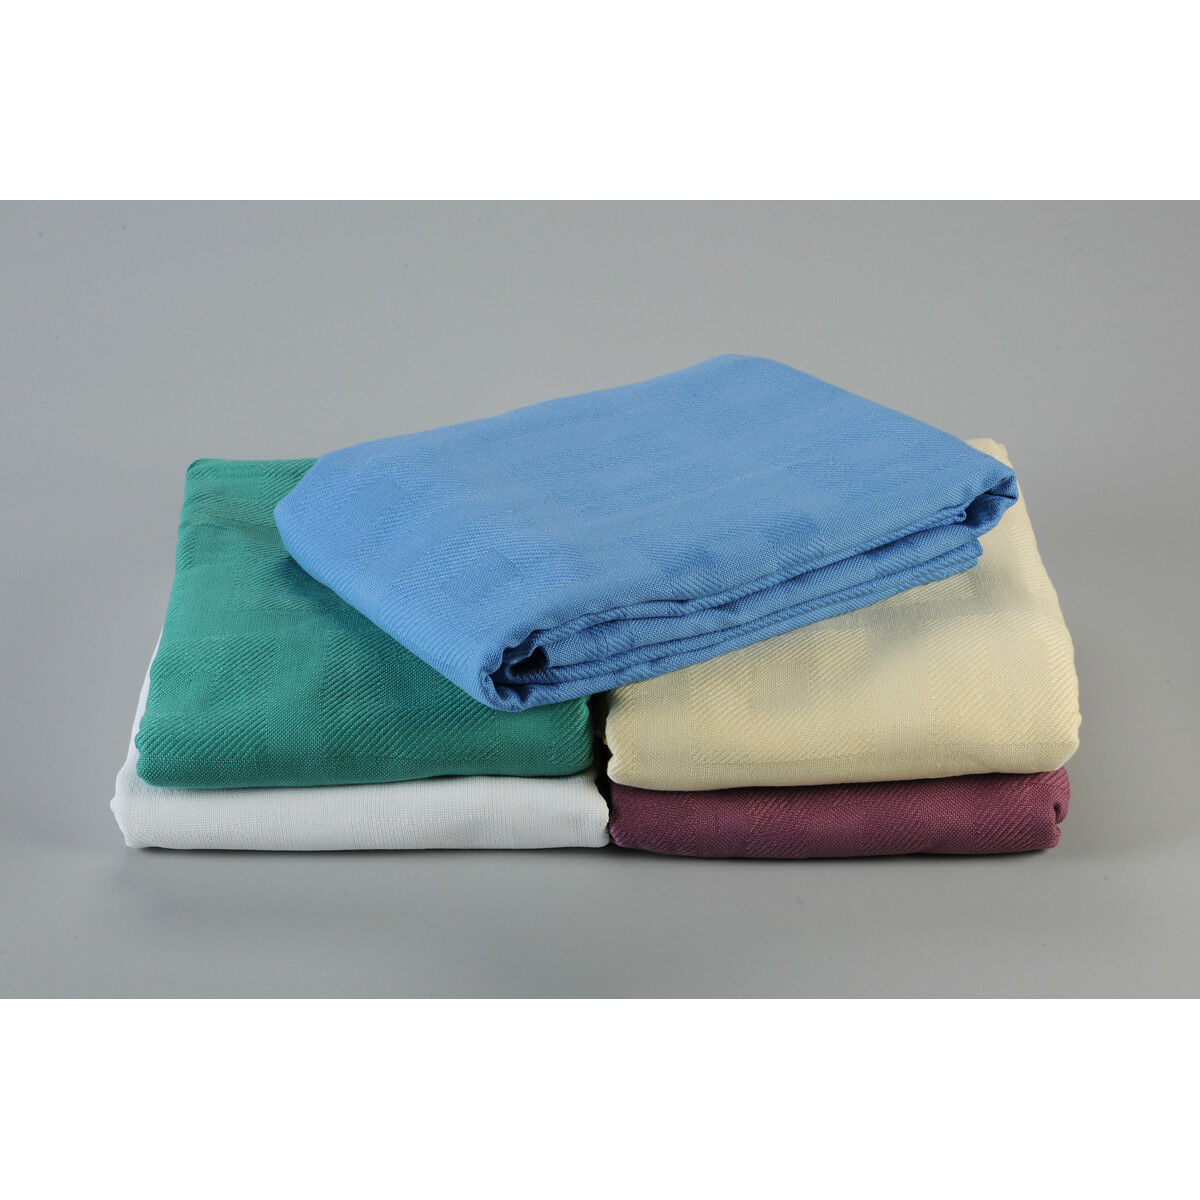 Royal Crest 66  X X X 90  3.0 LB - blu, BONE, RASPBERRY, TEAL SNAG FREE THERMAL   2ed225